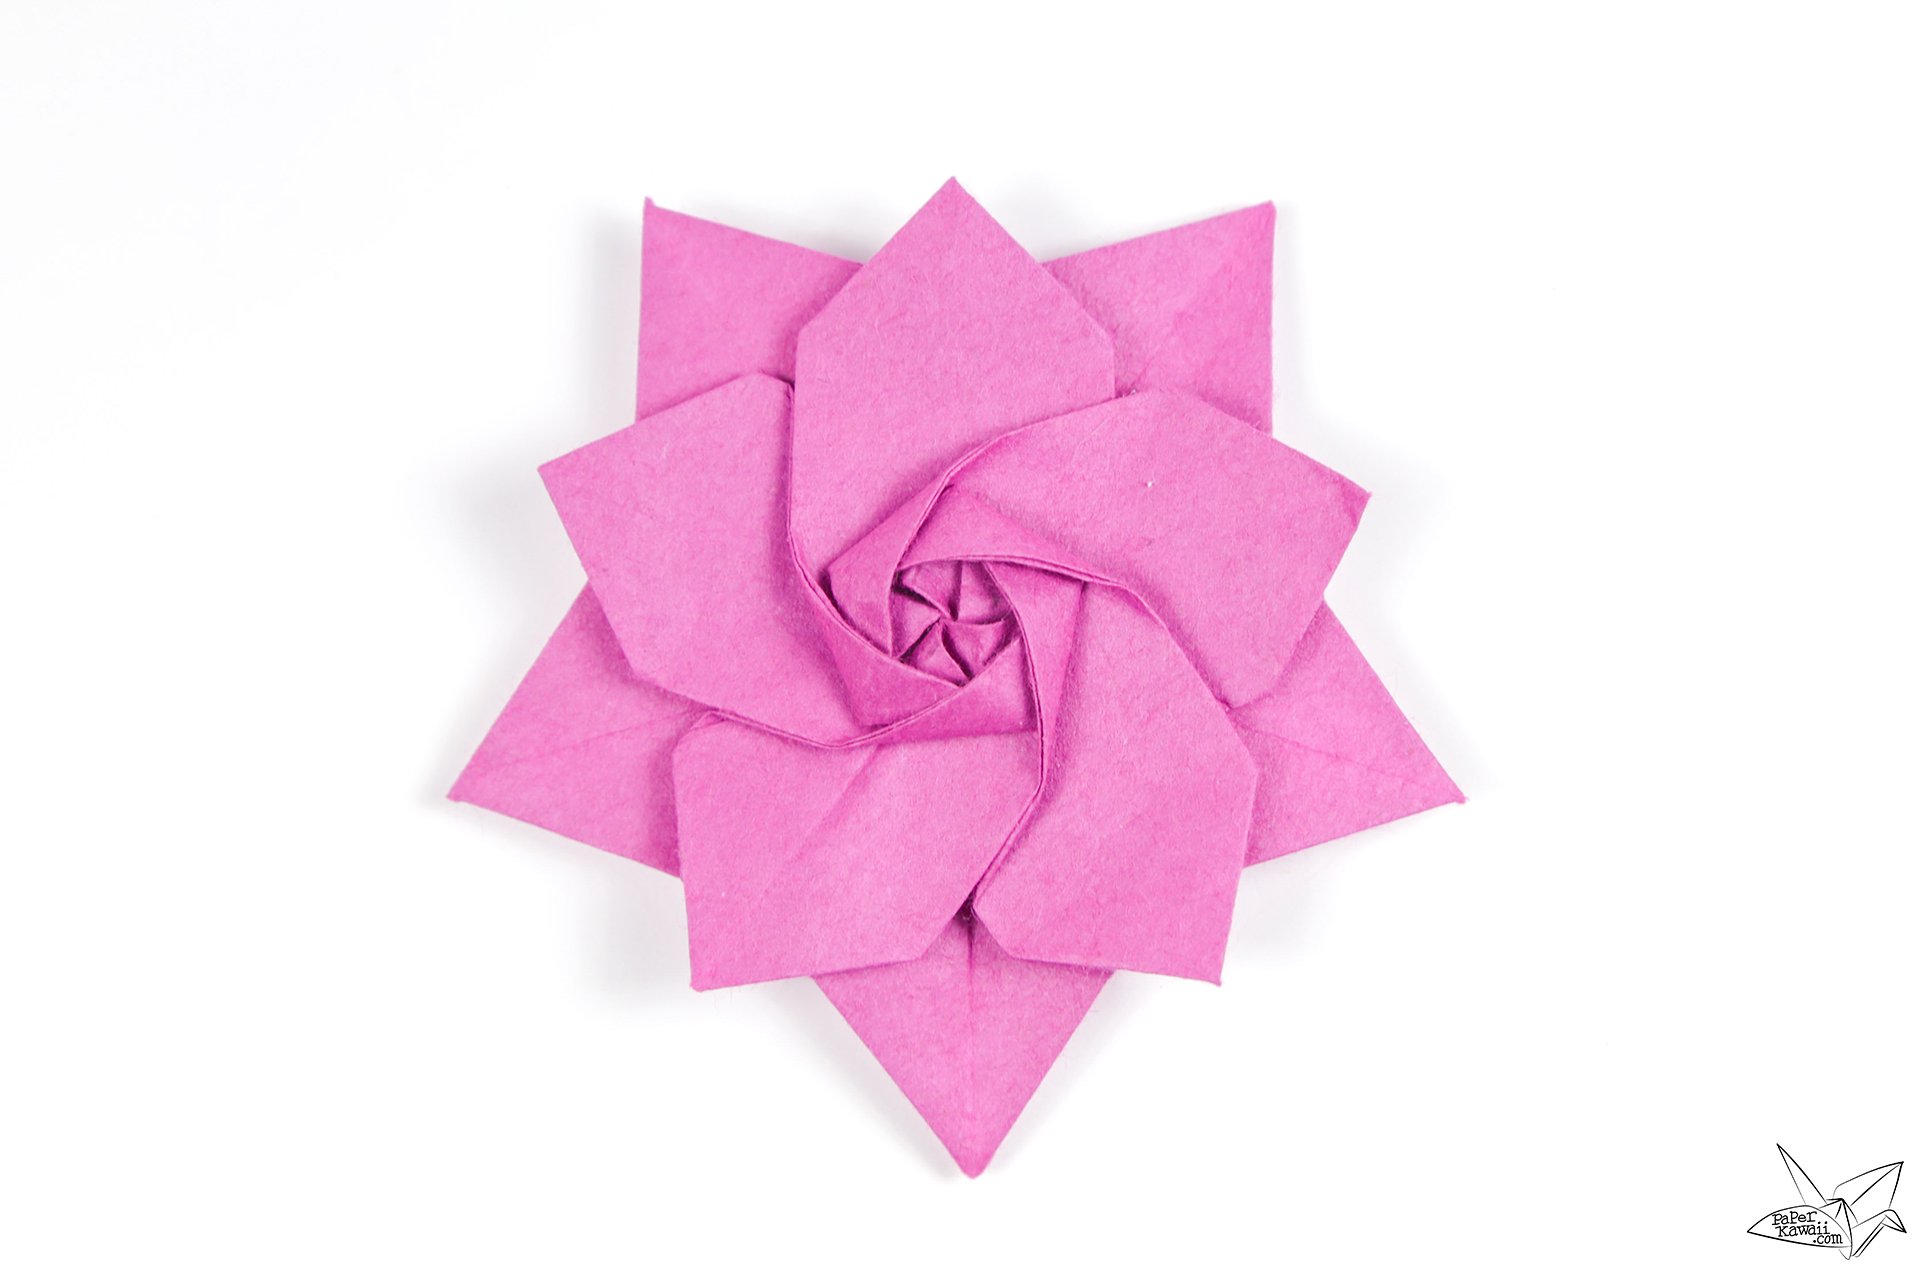 Origami Sakura Star Tutorial - Designed by Ali Bahmani ... - photo#48